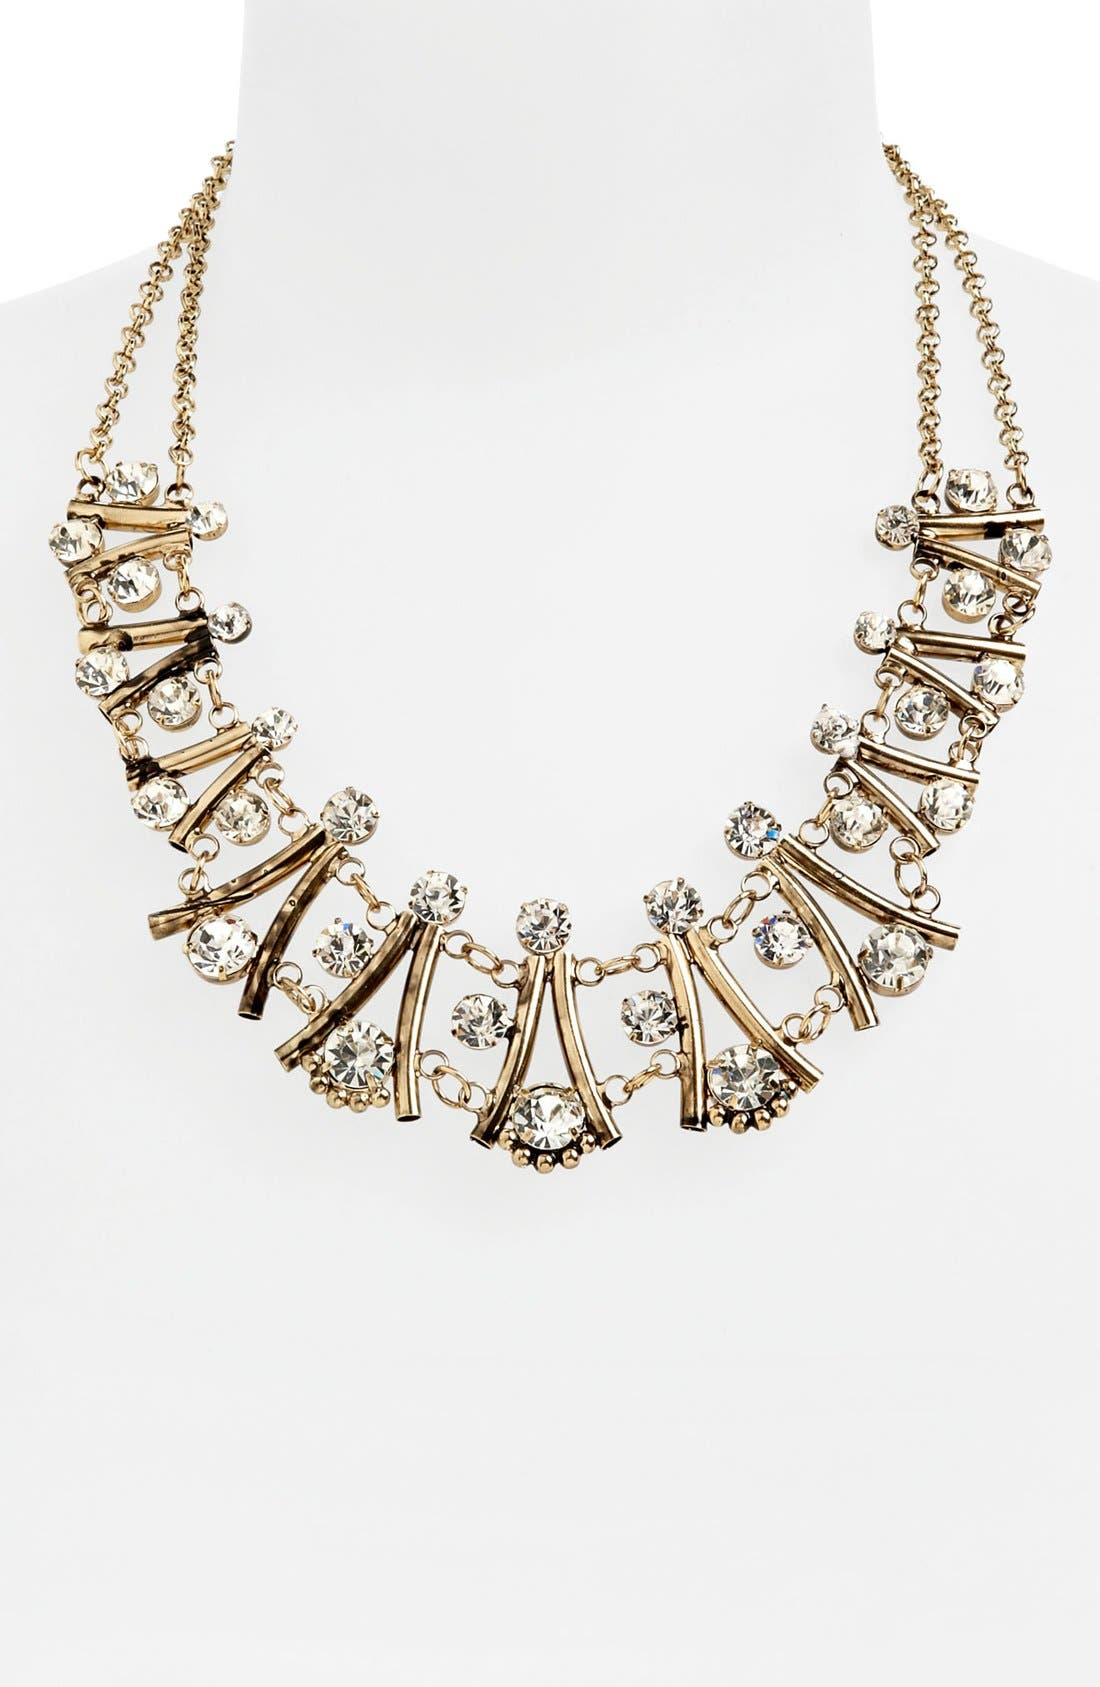 Main Image - Panacea Crystal Collar Necklace